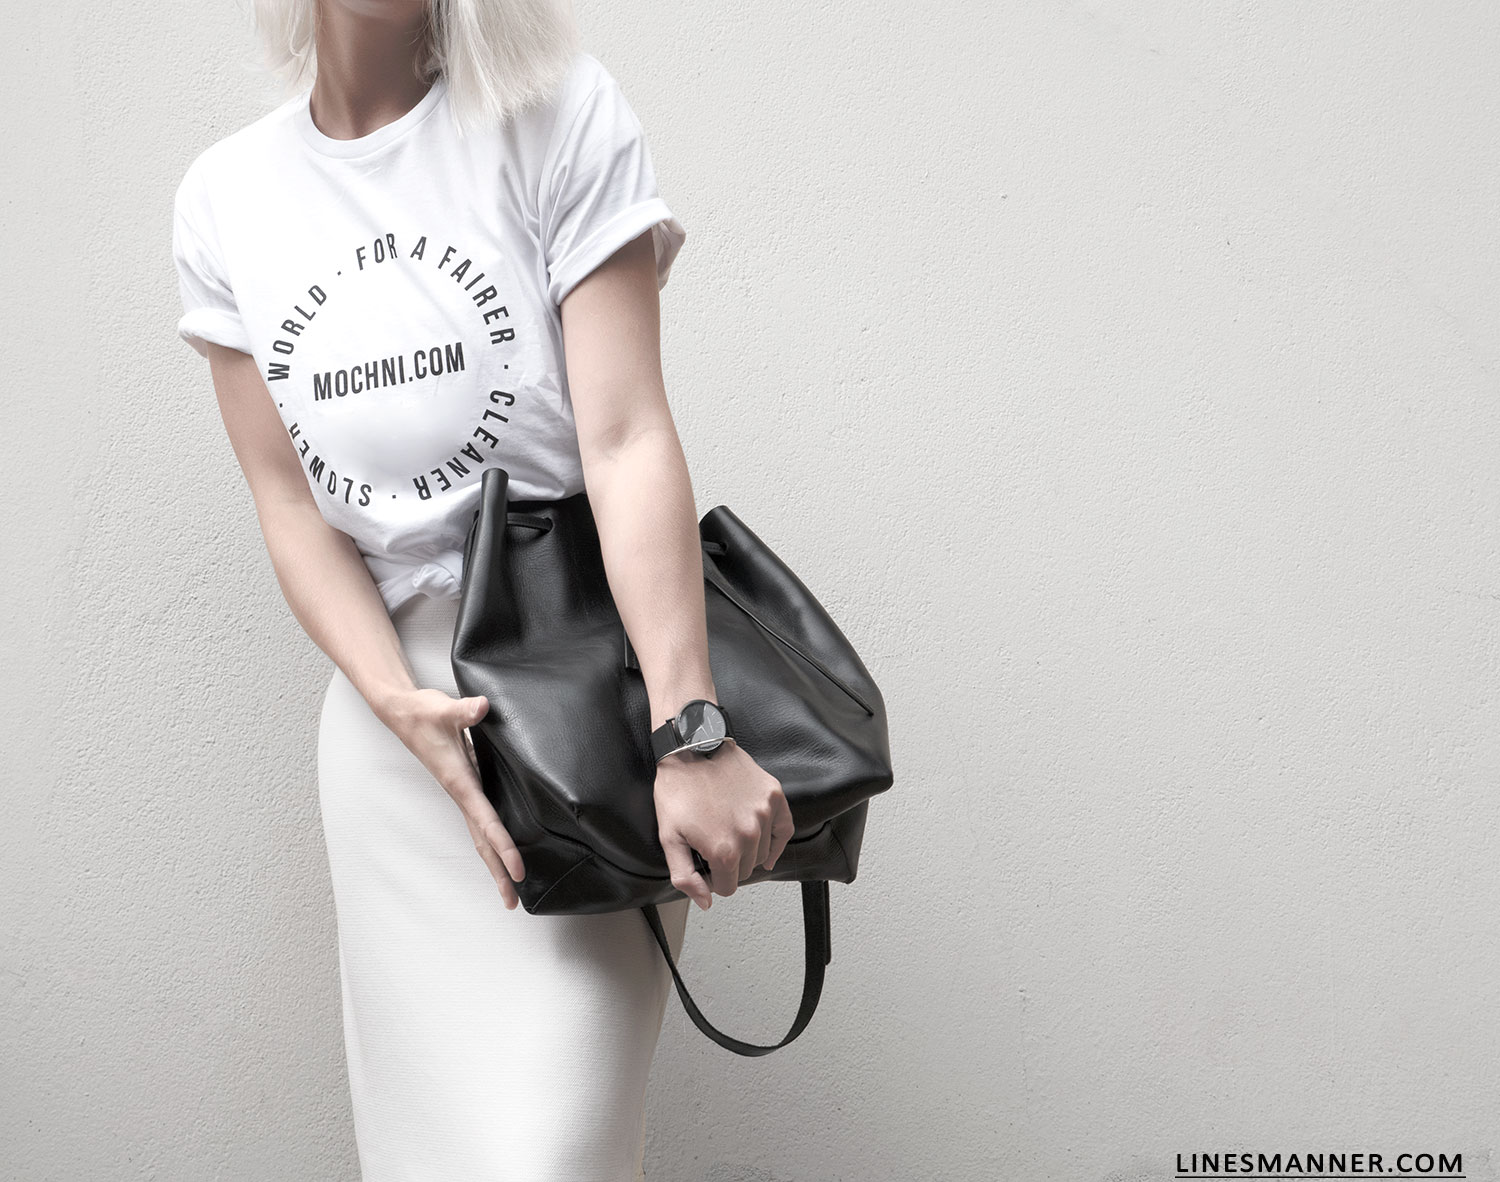 Lines-Manner-Mochni-Slow_Fashion_Plateform-Sustainable-Eco_Fashion-Awareness-Tee-Fairer-World-Conscious-Essentials-Minimal-Monochrome-Quality-Organic-5